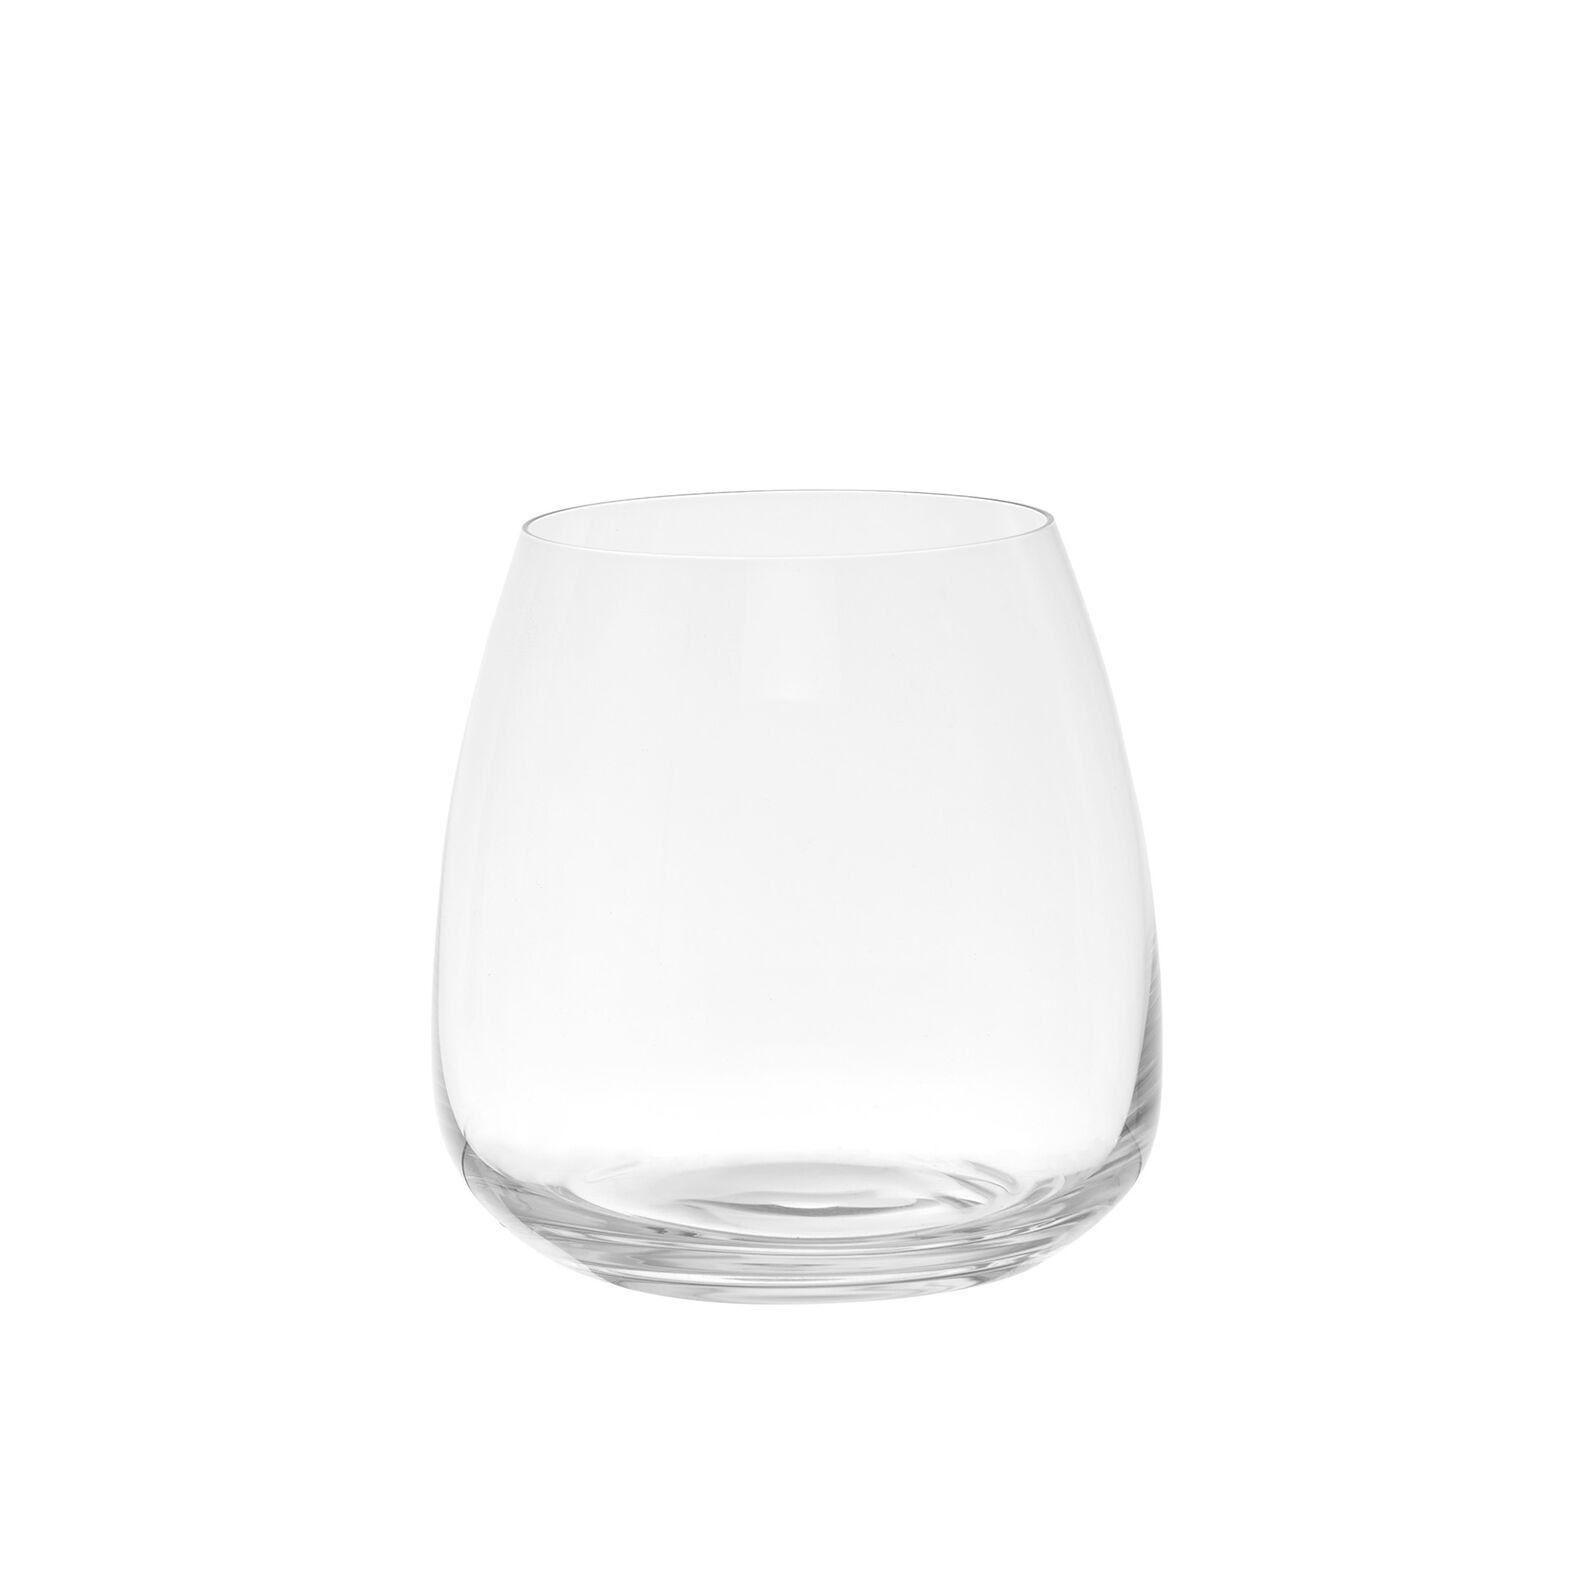 Set of 6 water tumblers in Bohemia crystal